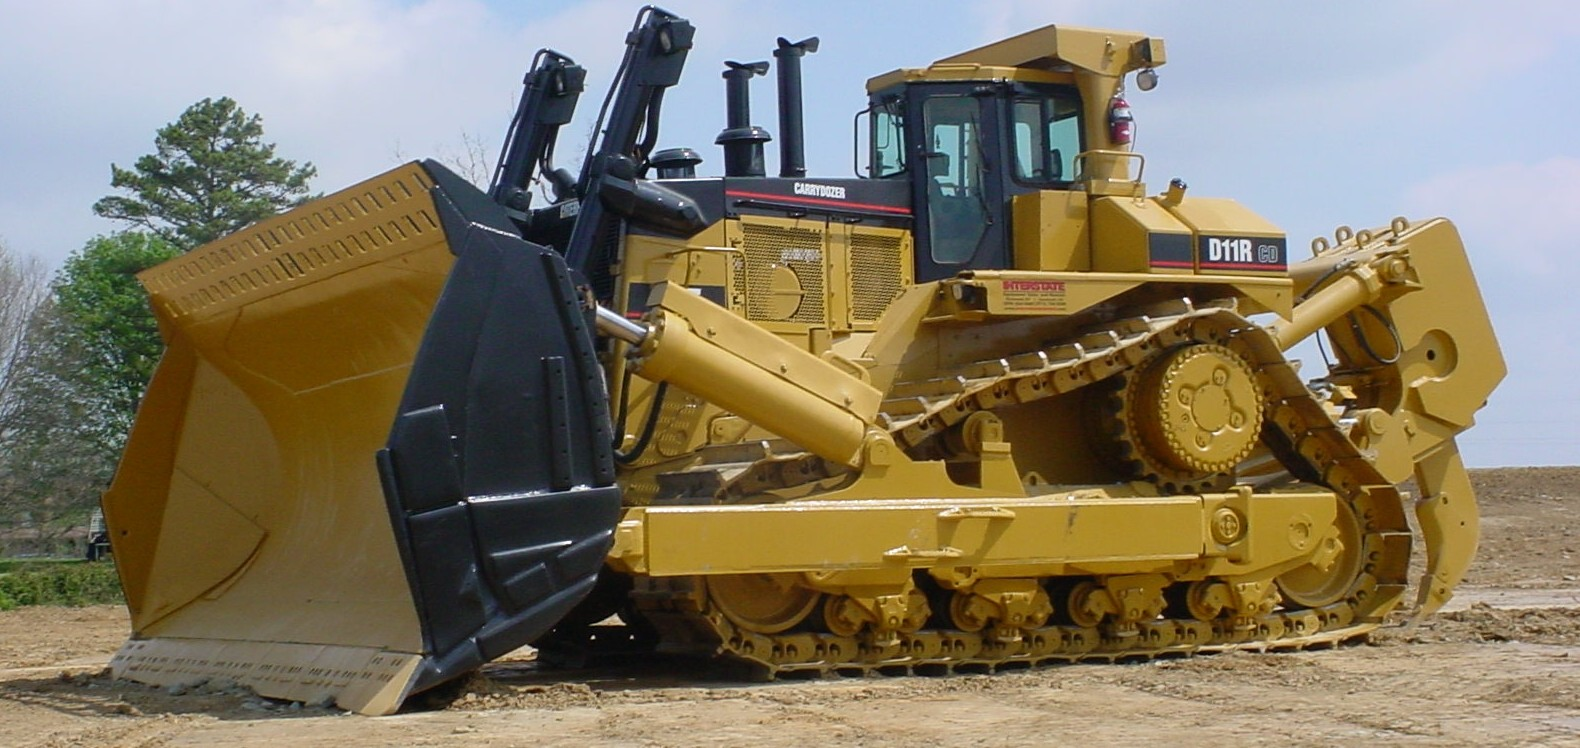 bobcat equipment wallpaper